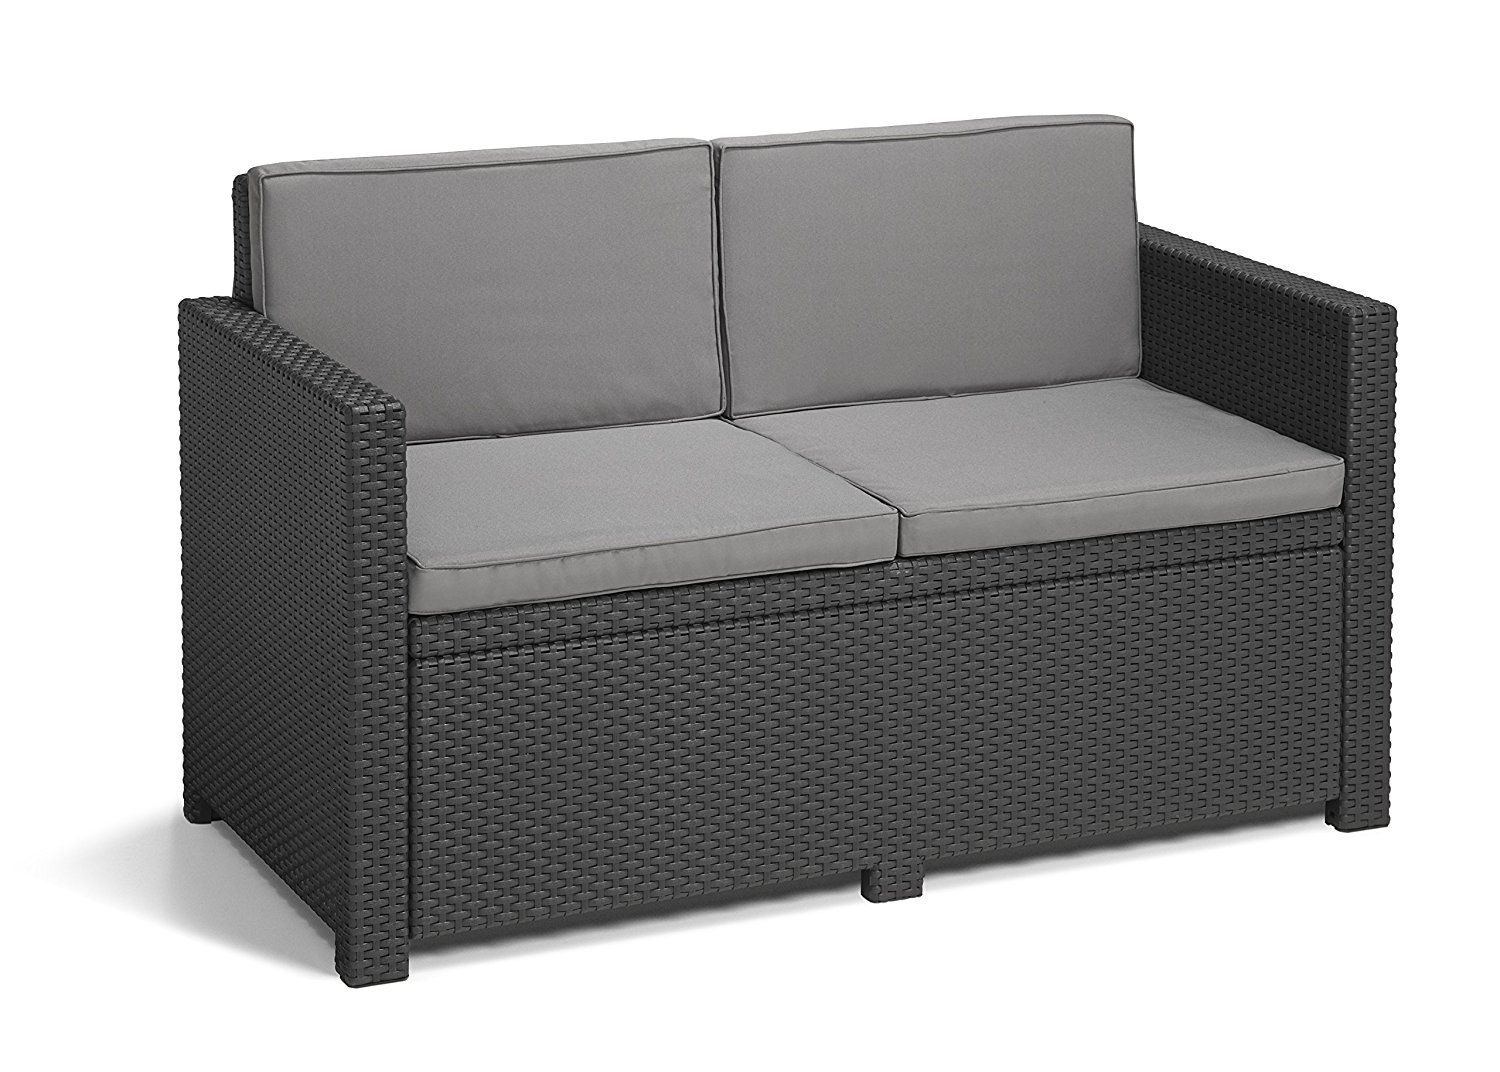 Allibert by Keter Monaco Outdoor 9 Seater Garden Sofa with Cool